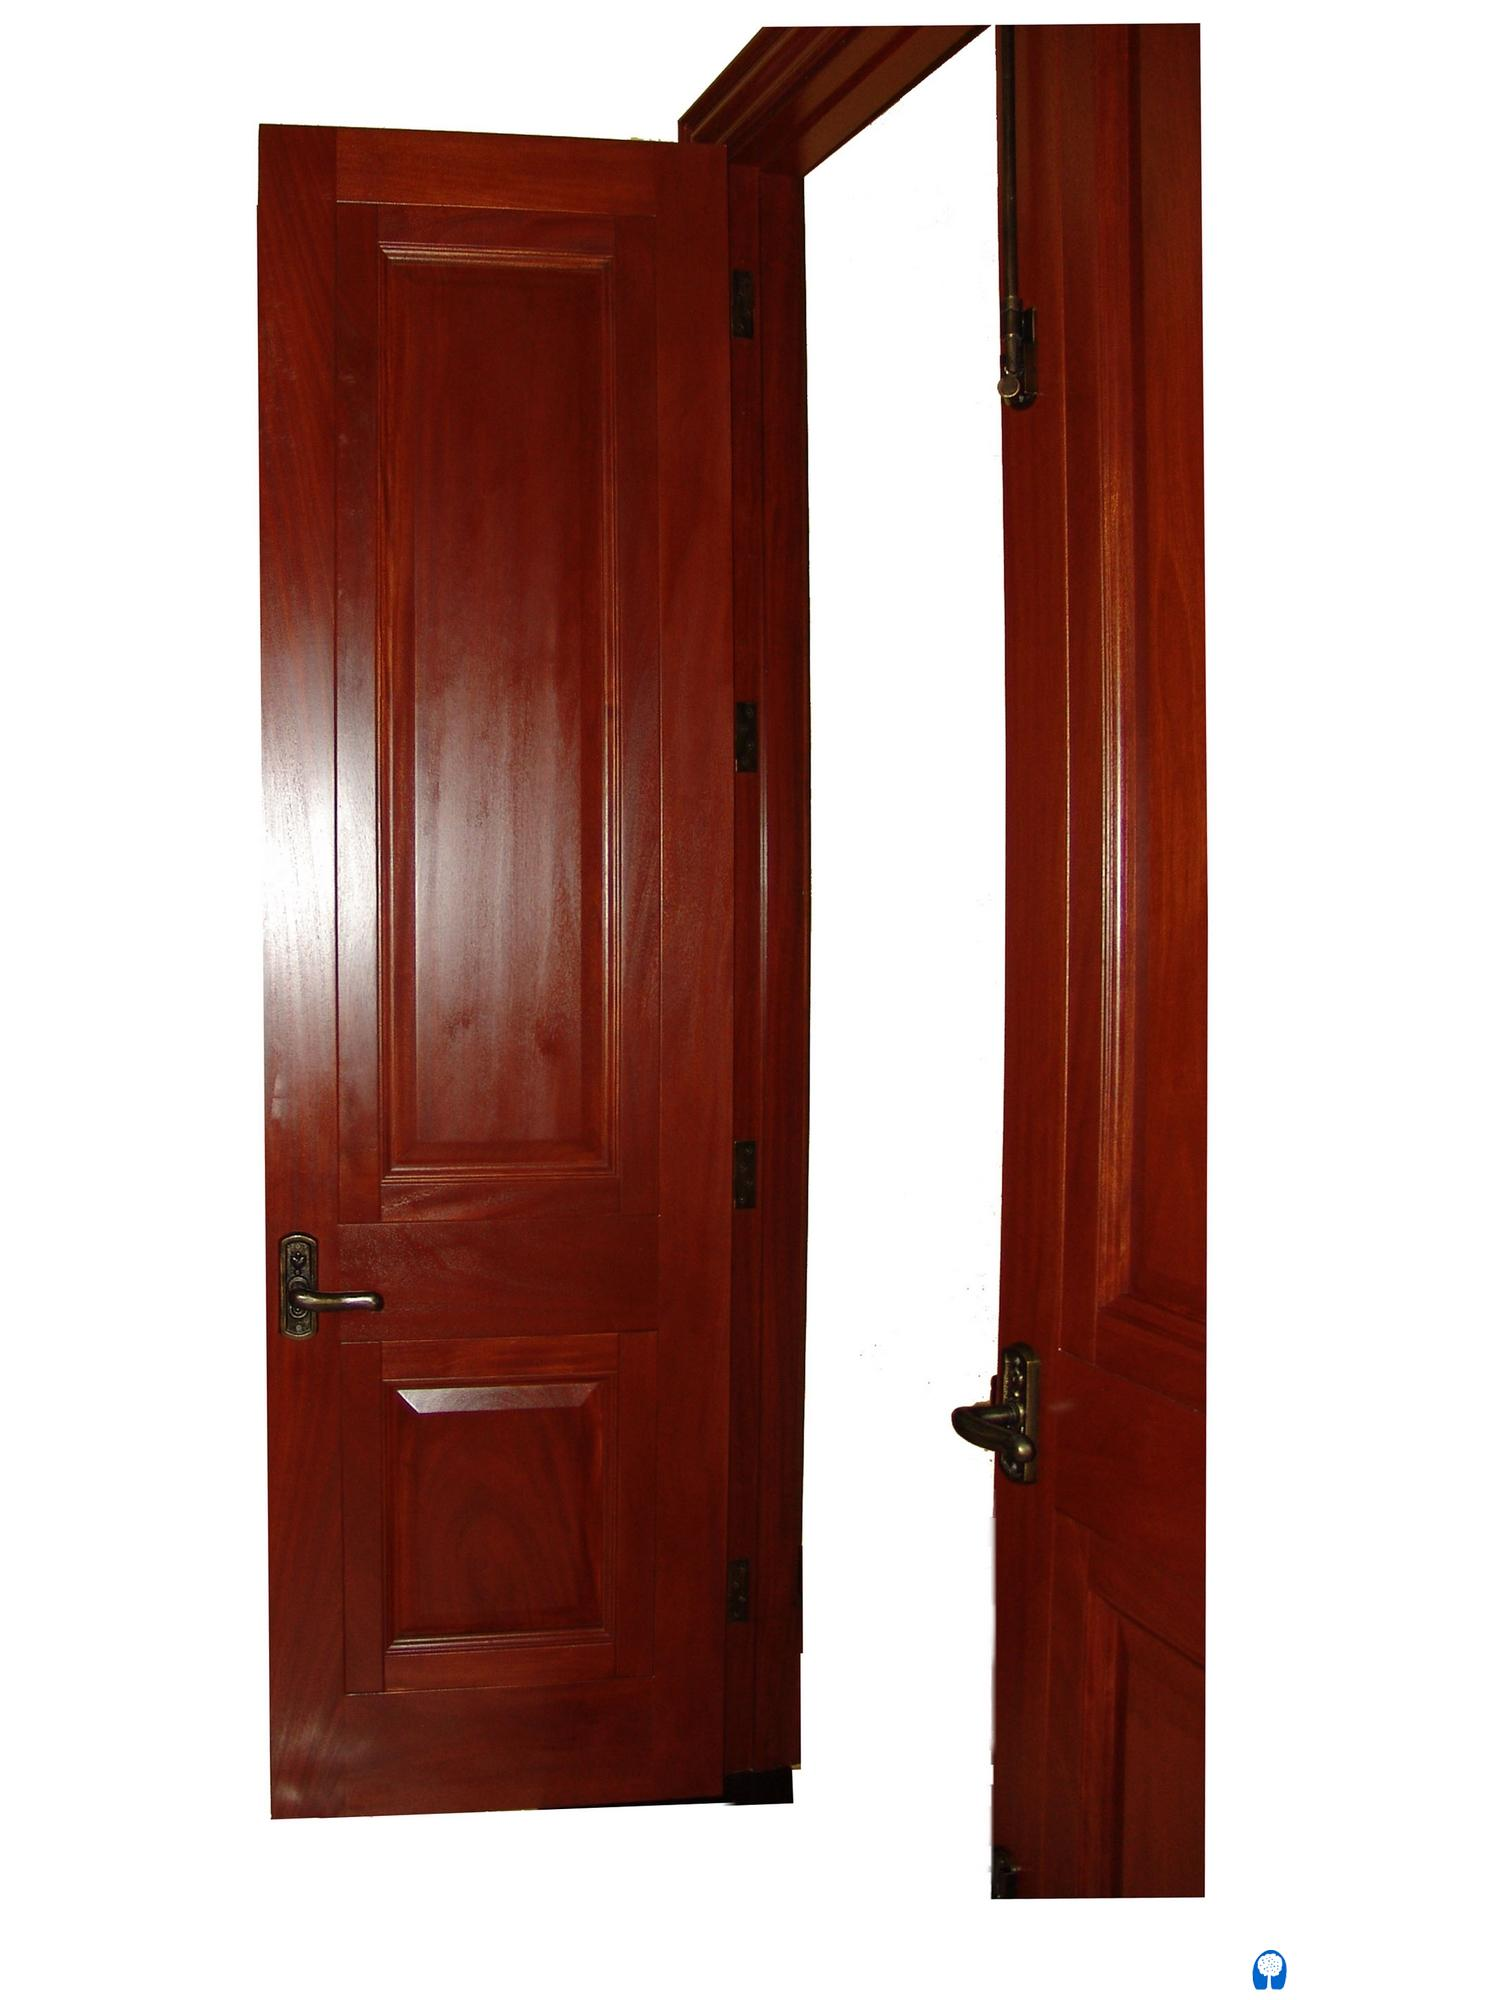 Jupiter mahogany interior doors sabana windows for Mahogany interior doors